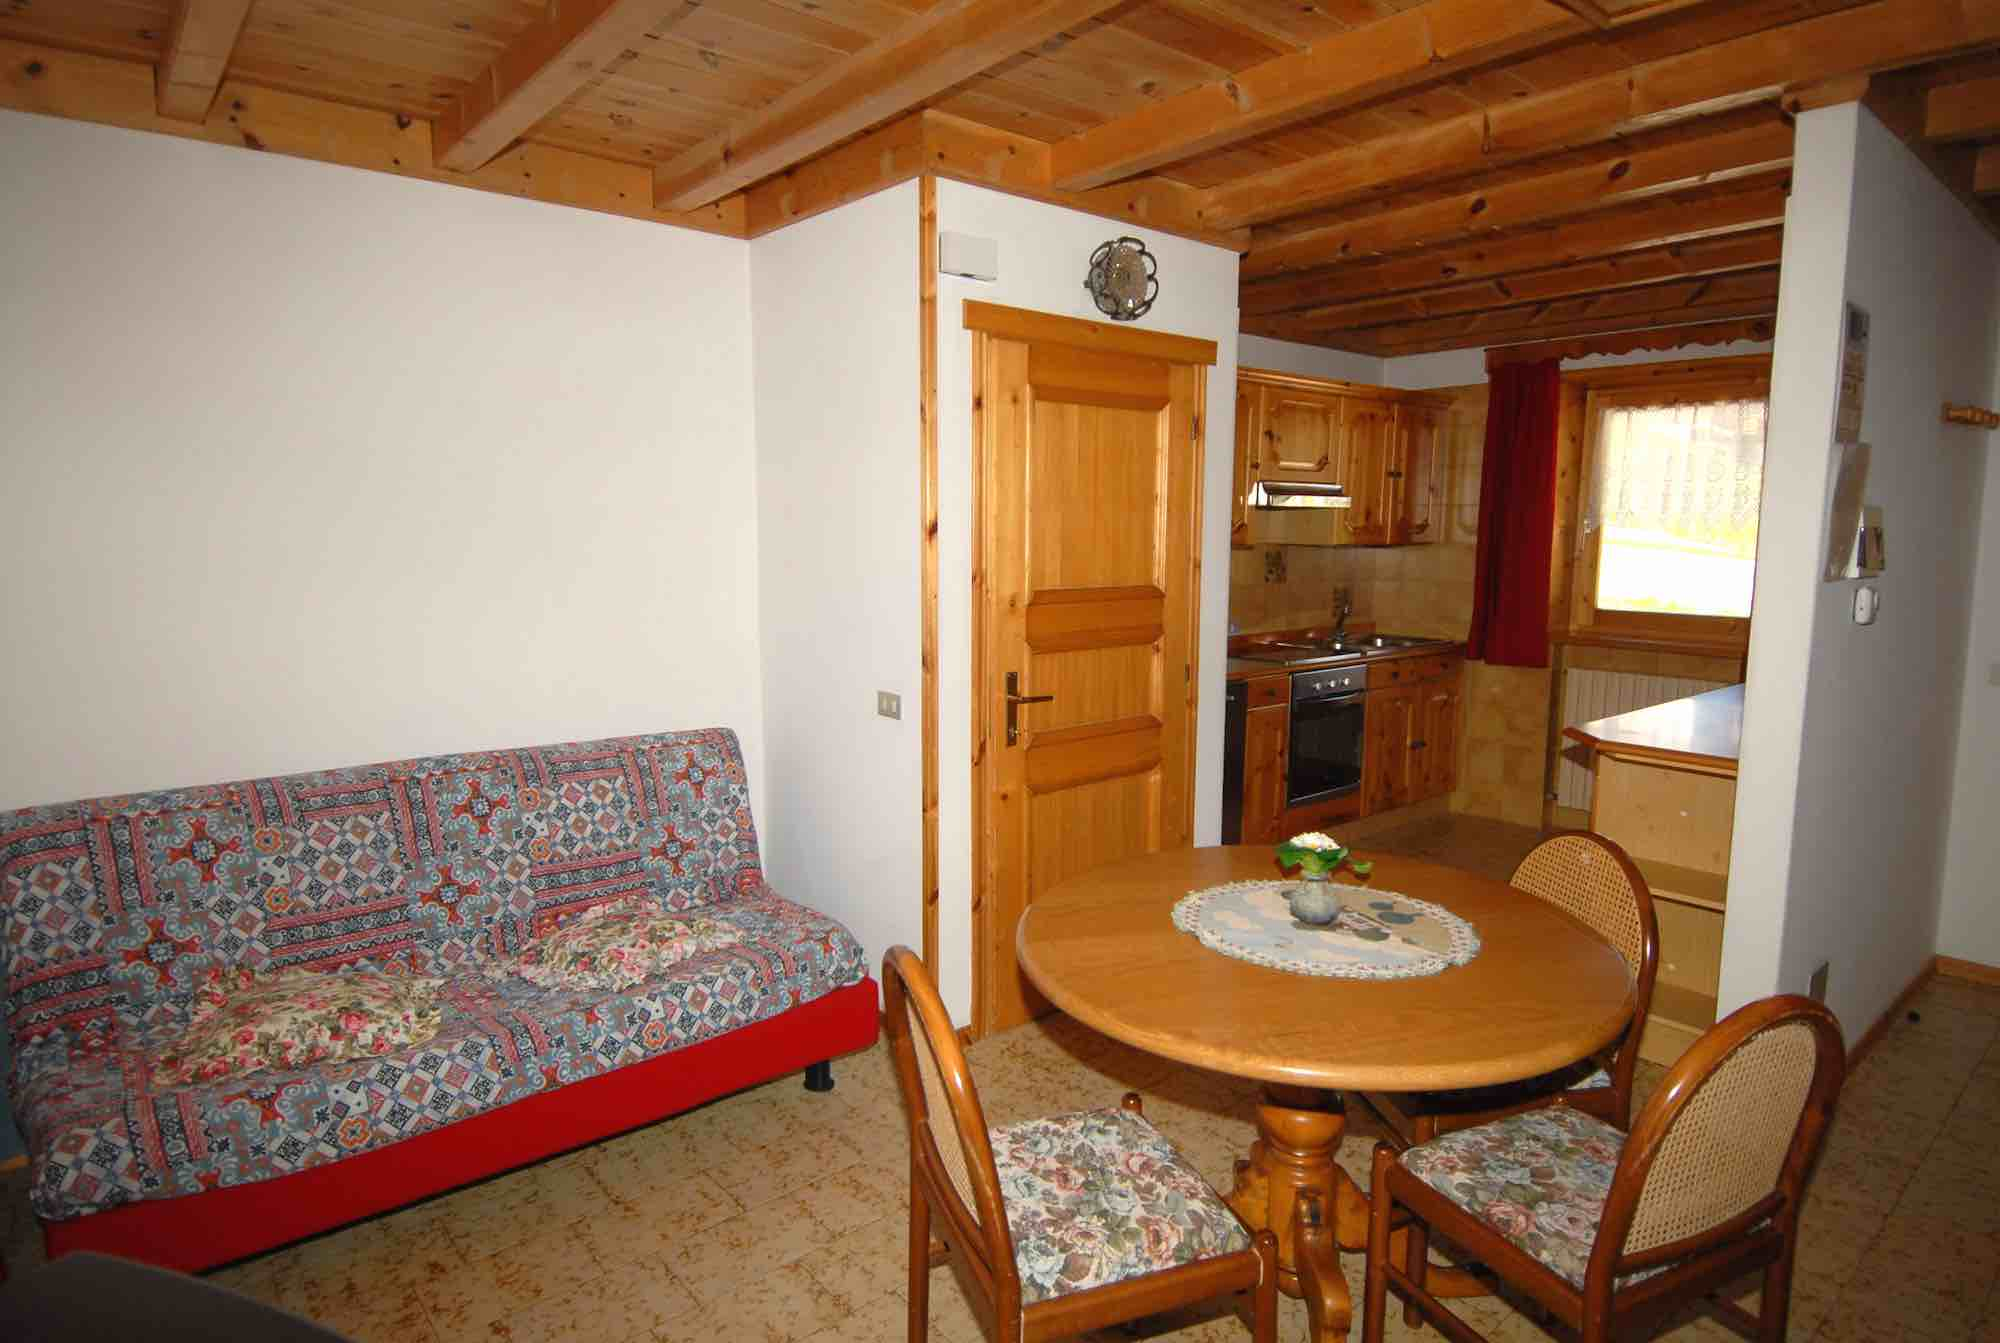 Baita Guana - Via Borch N.800, Livigno 23041 - Apartment - Primo Piano X4 2